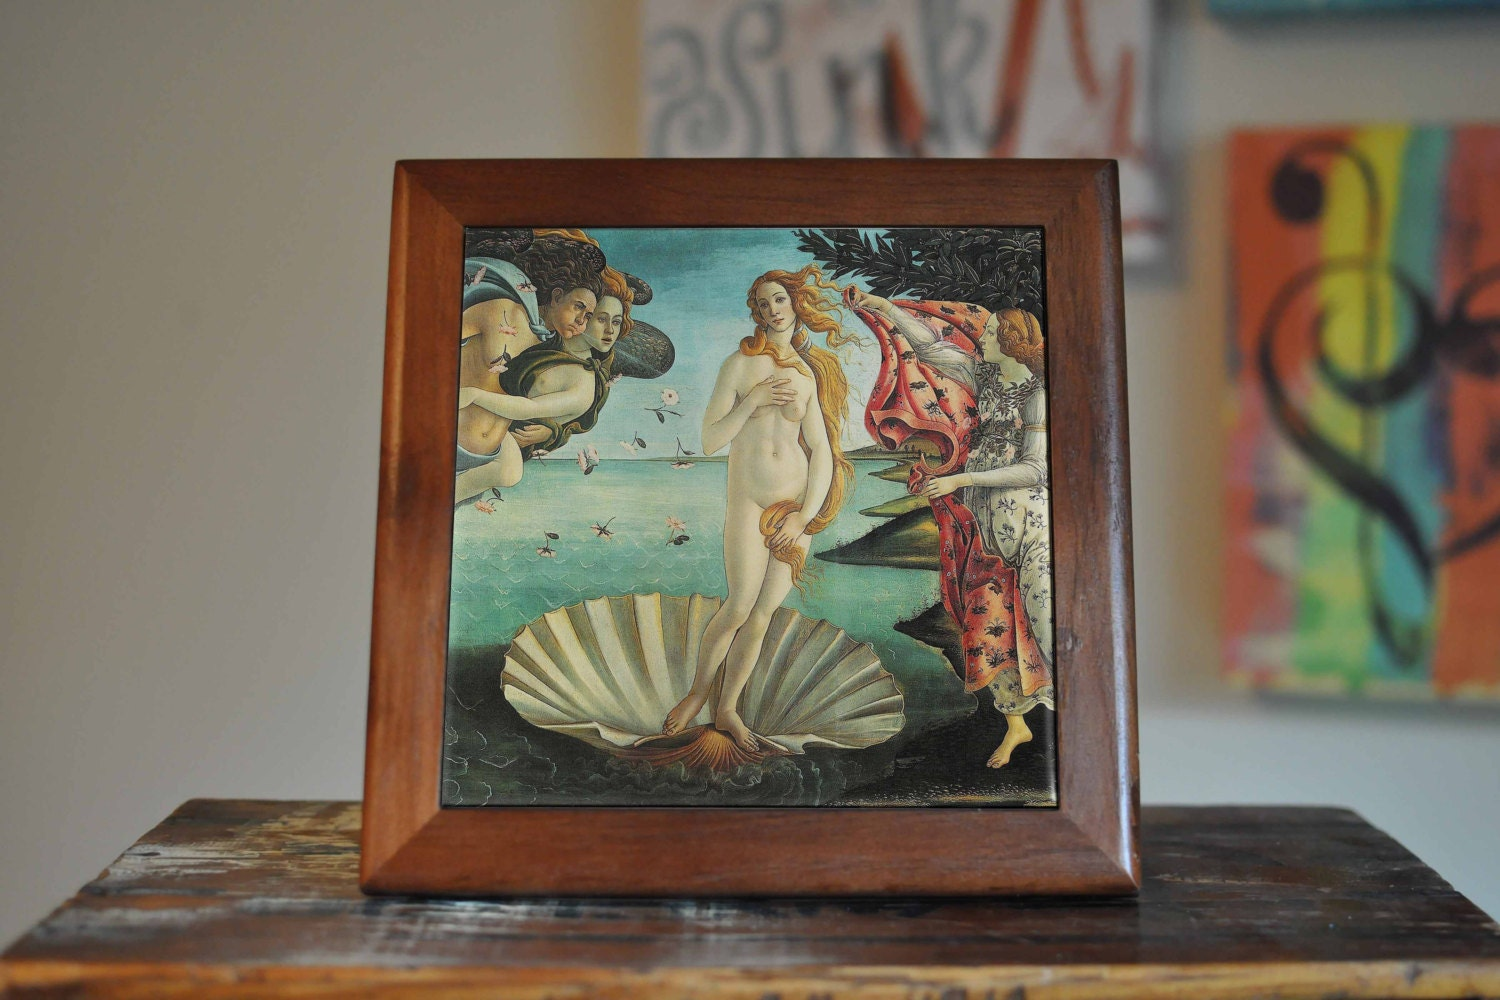 Botticelli venus ceramic tile coaster set artwork trivet hot plate botticelli venus ceramic tile coaster set artwork trivet hot plate pot stand plant splashback kitchen decor dailygadgetfo Gallery